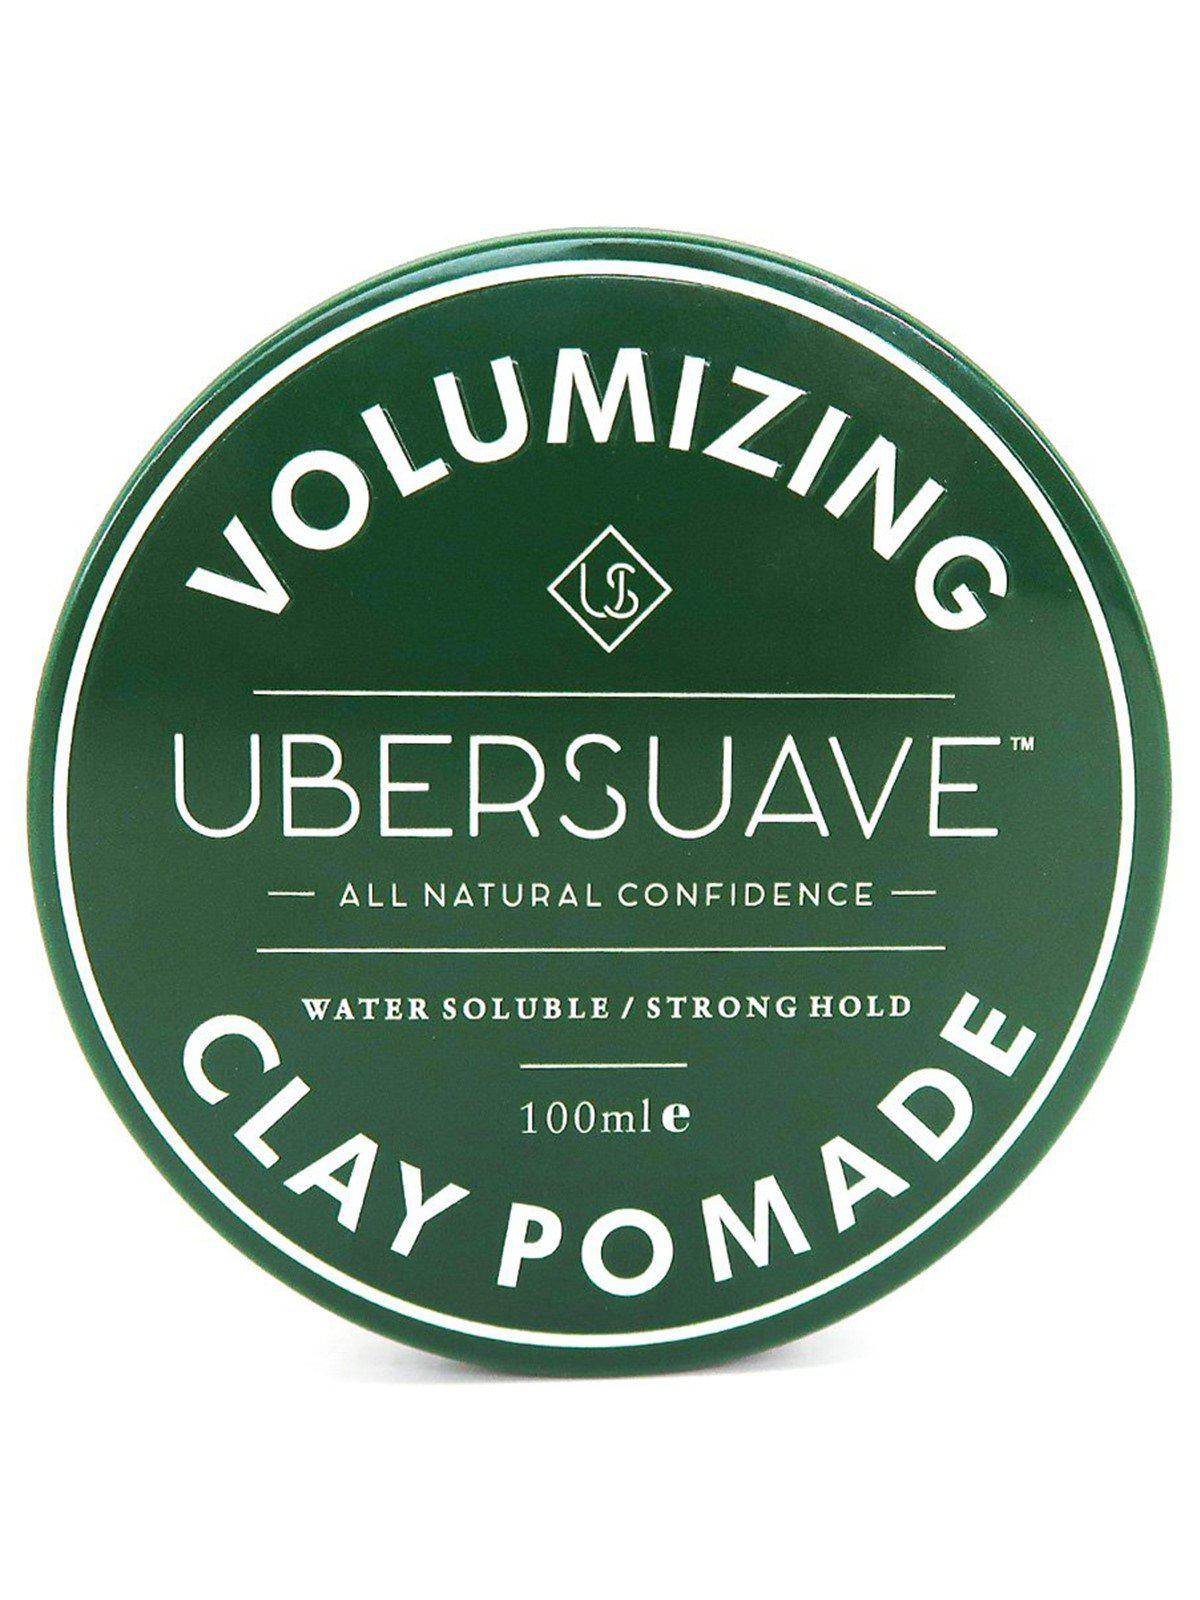 Ubersuave Volumizing Clay Pomade 100ml - MORE by Morello Indonesia